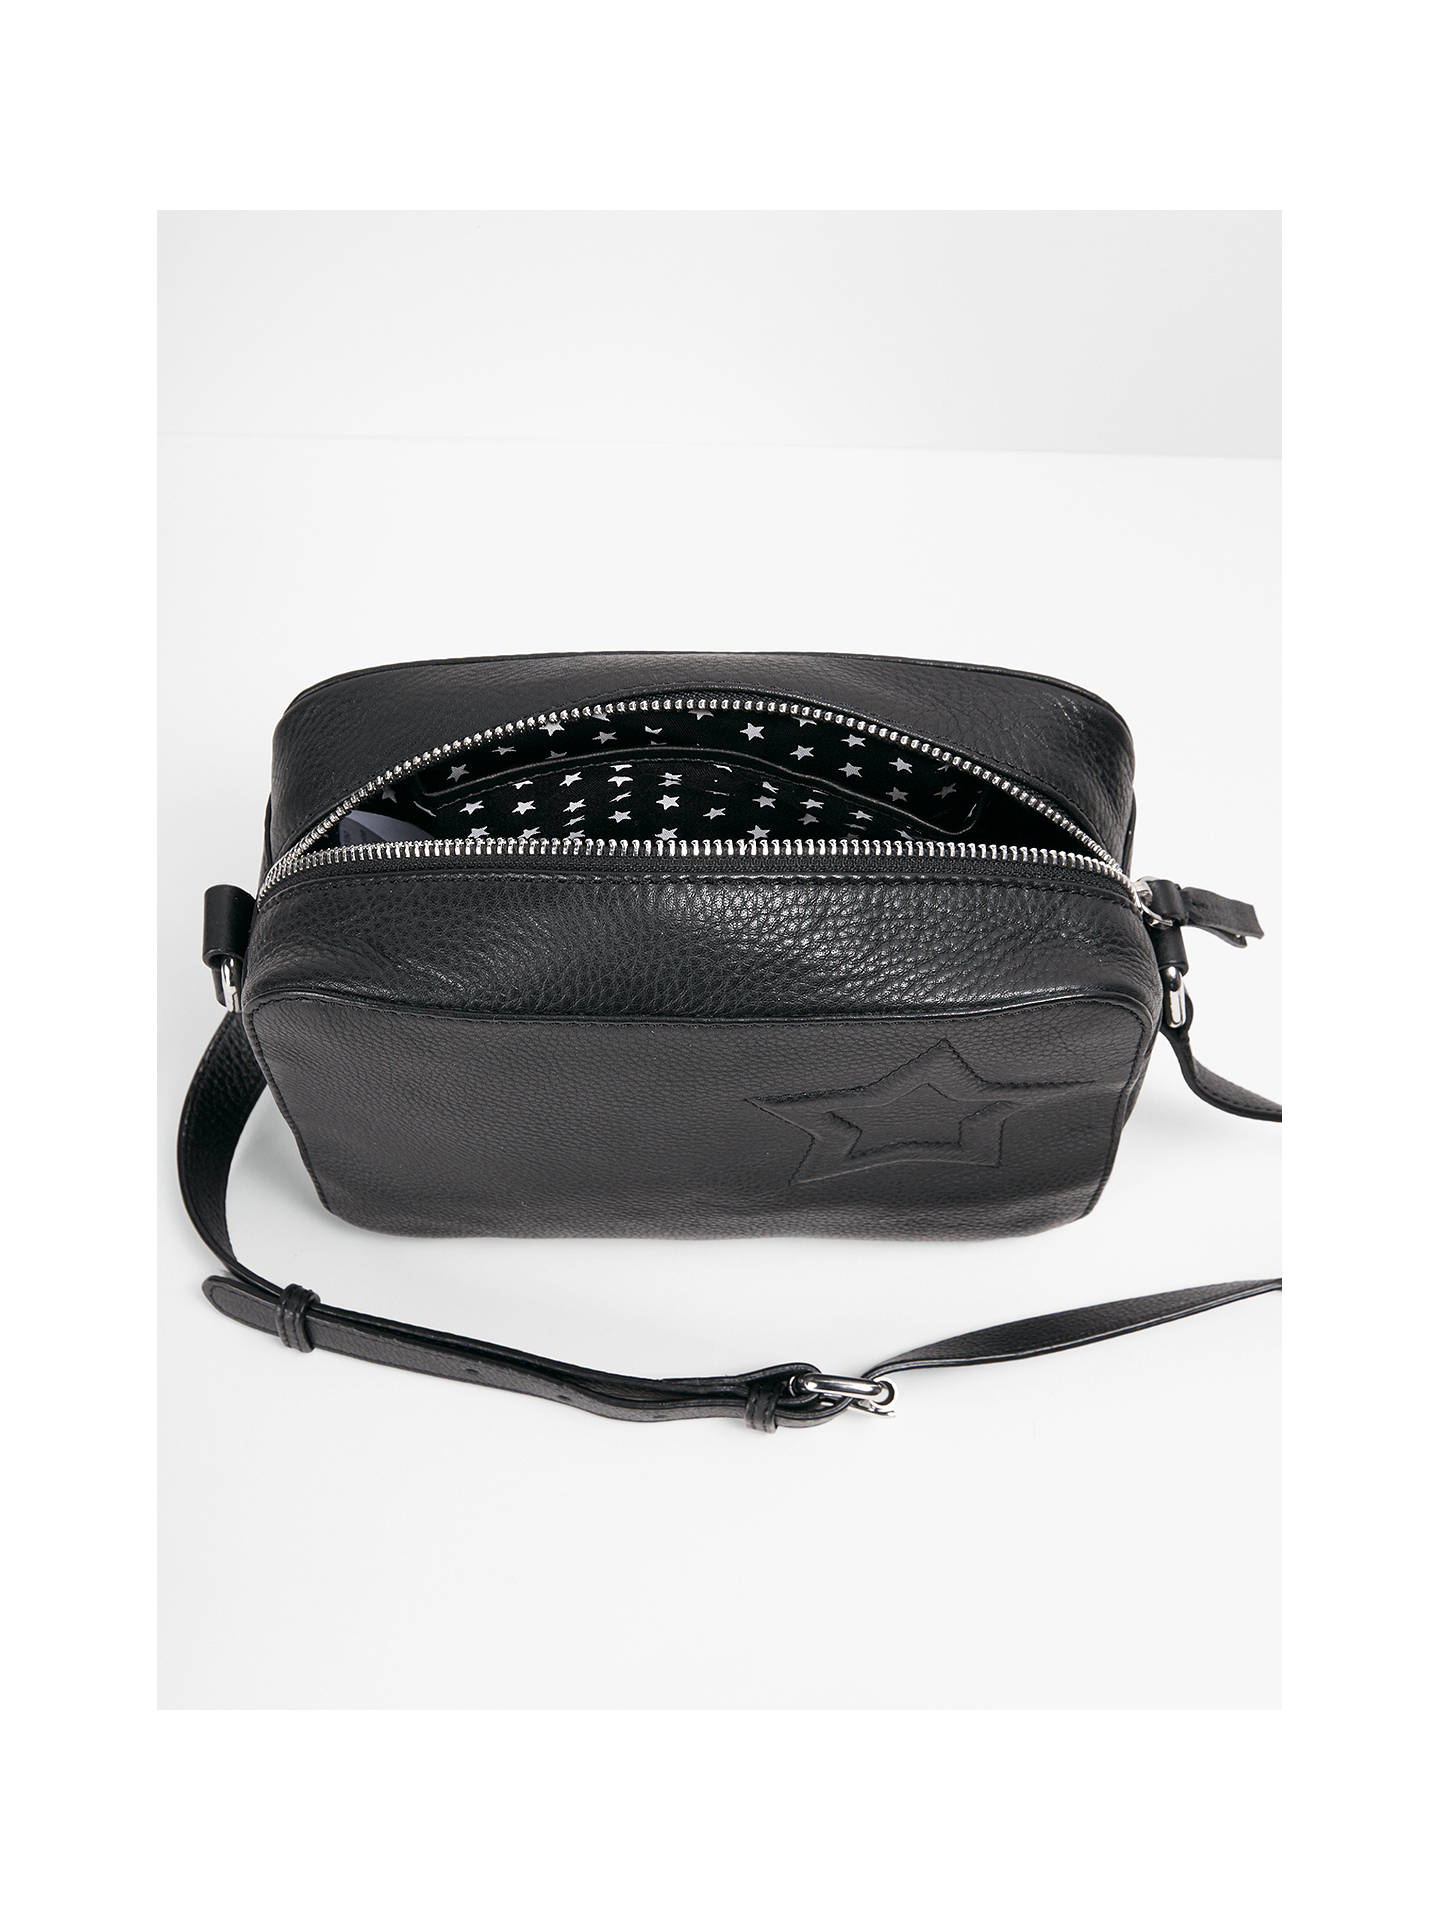 Hush Fifi Leather Cross Body Bag Black Online At Johnlewis